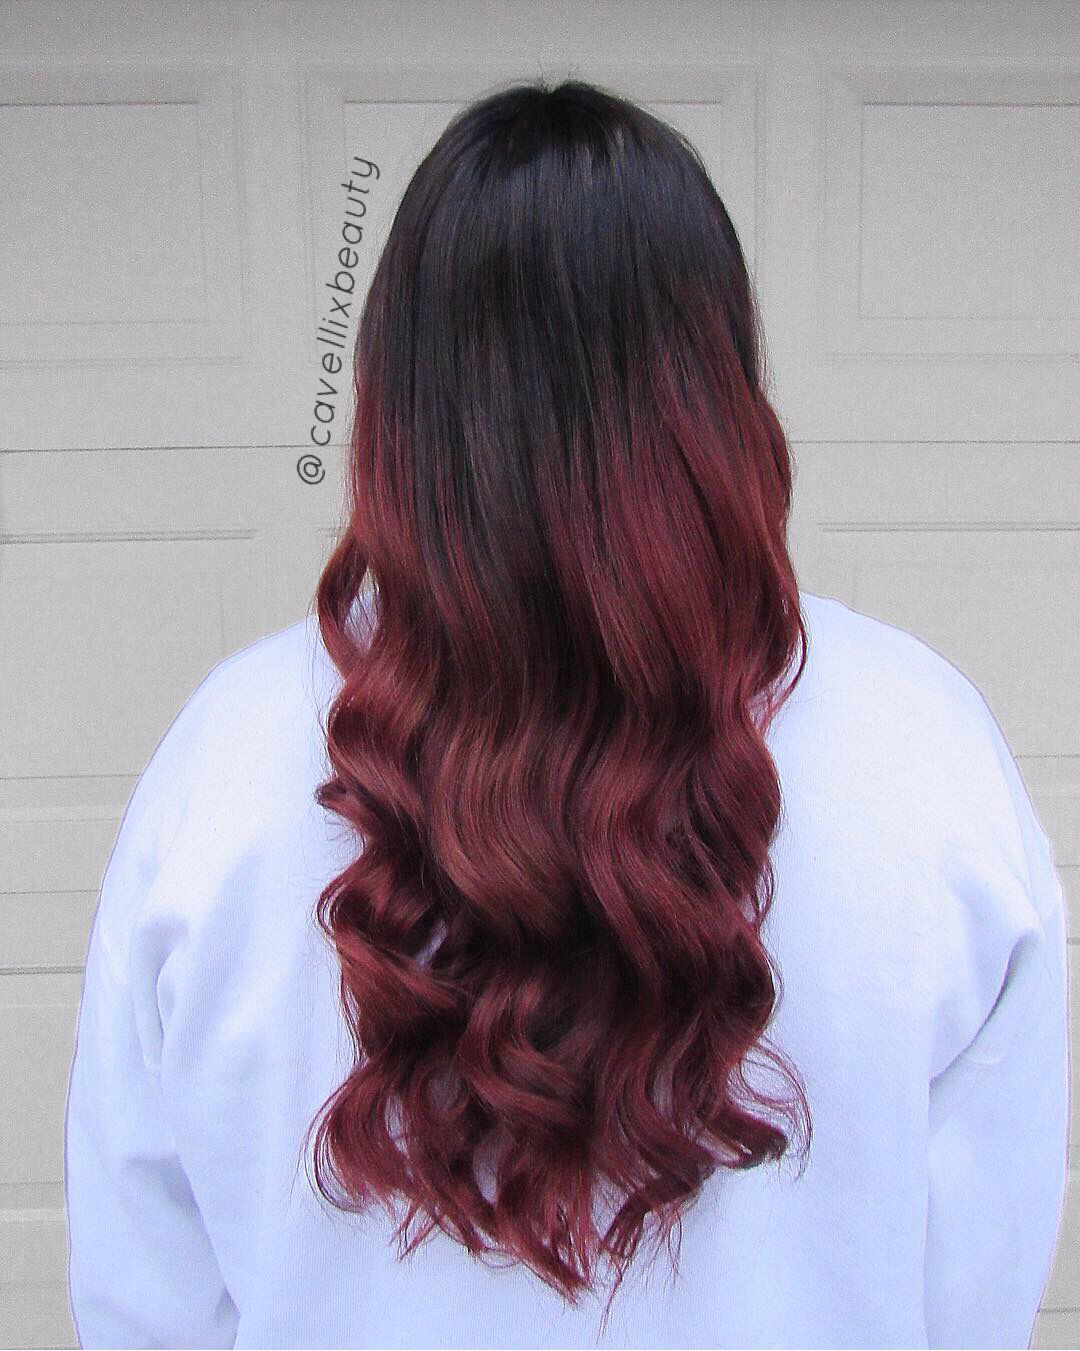 Used Rusk Products to create this pretty ombré just in